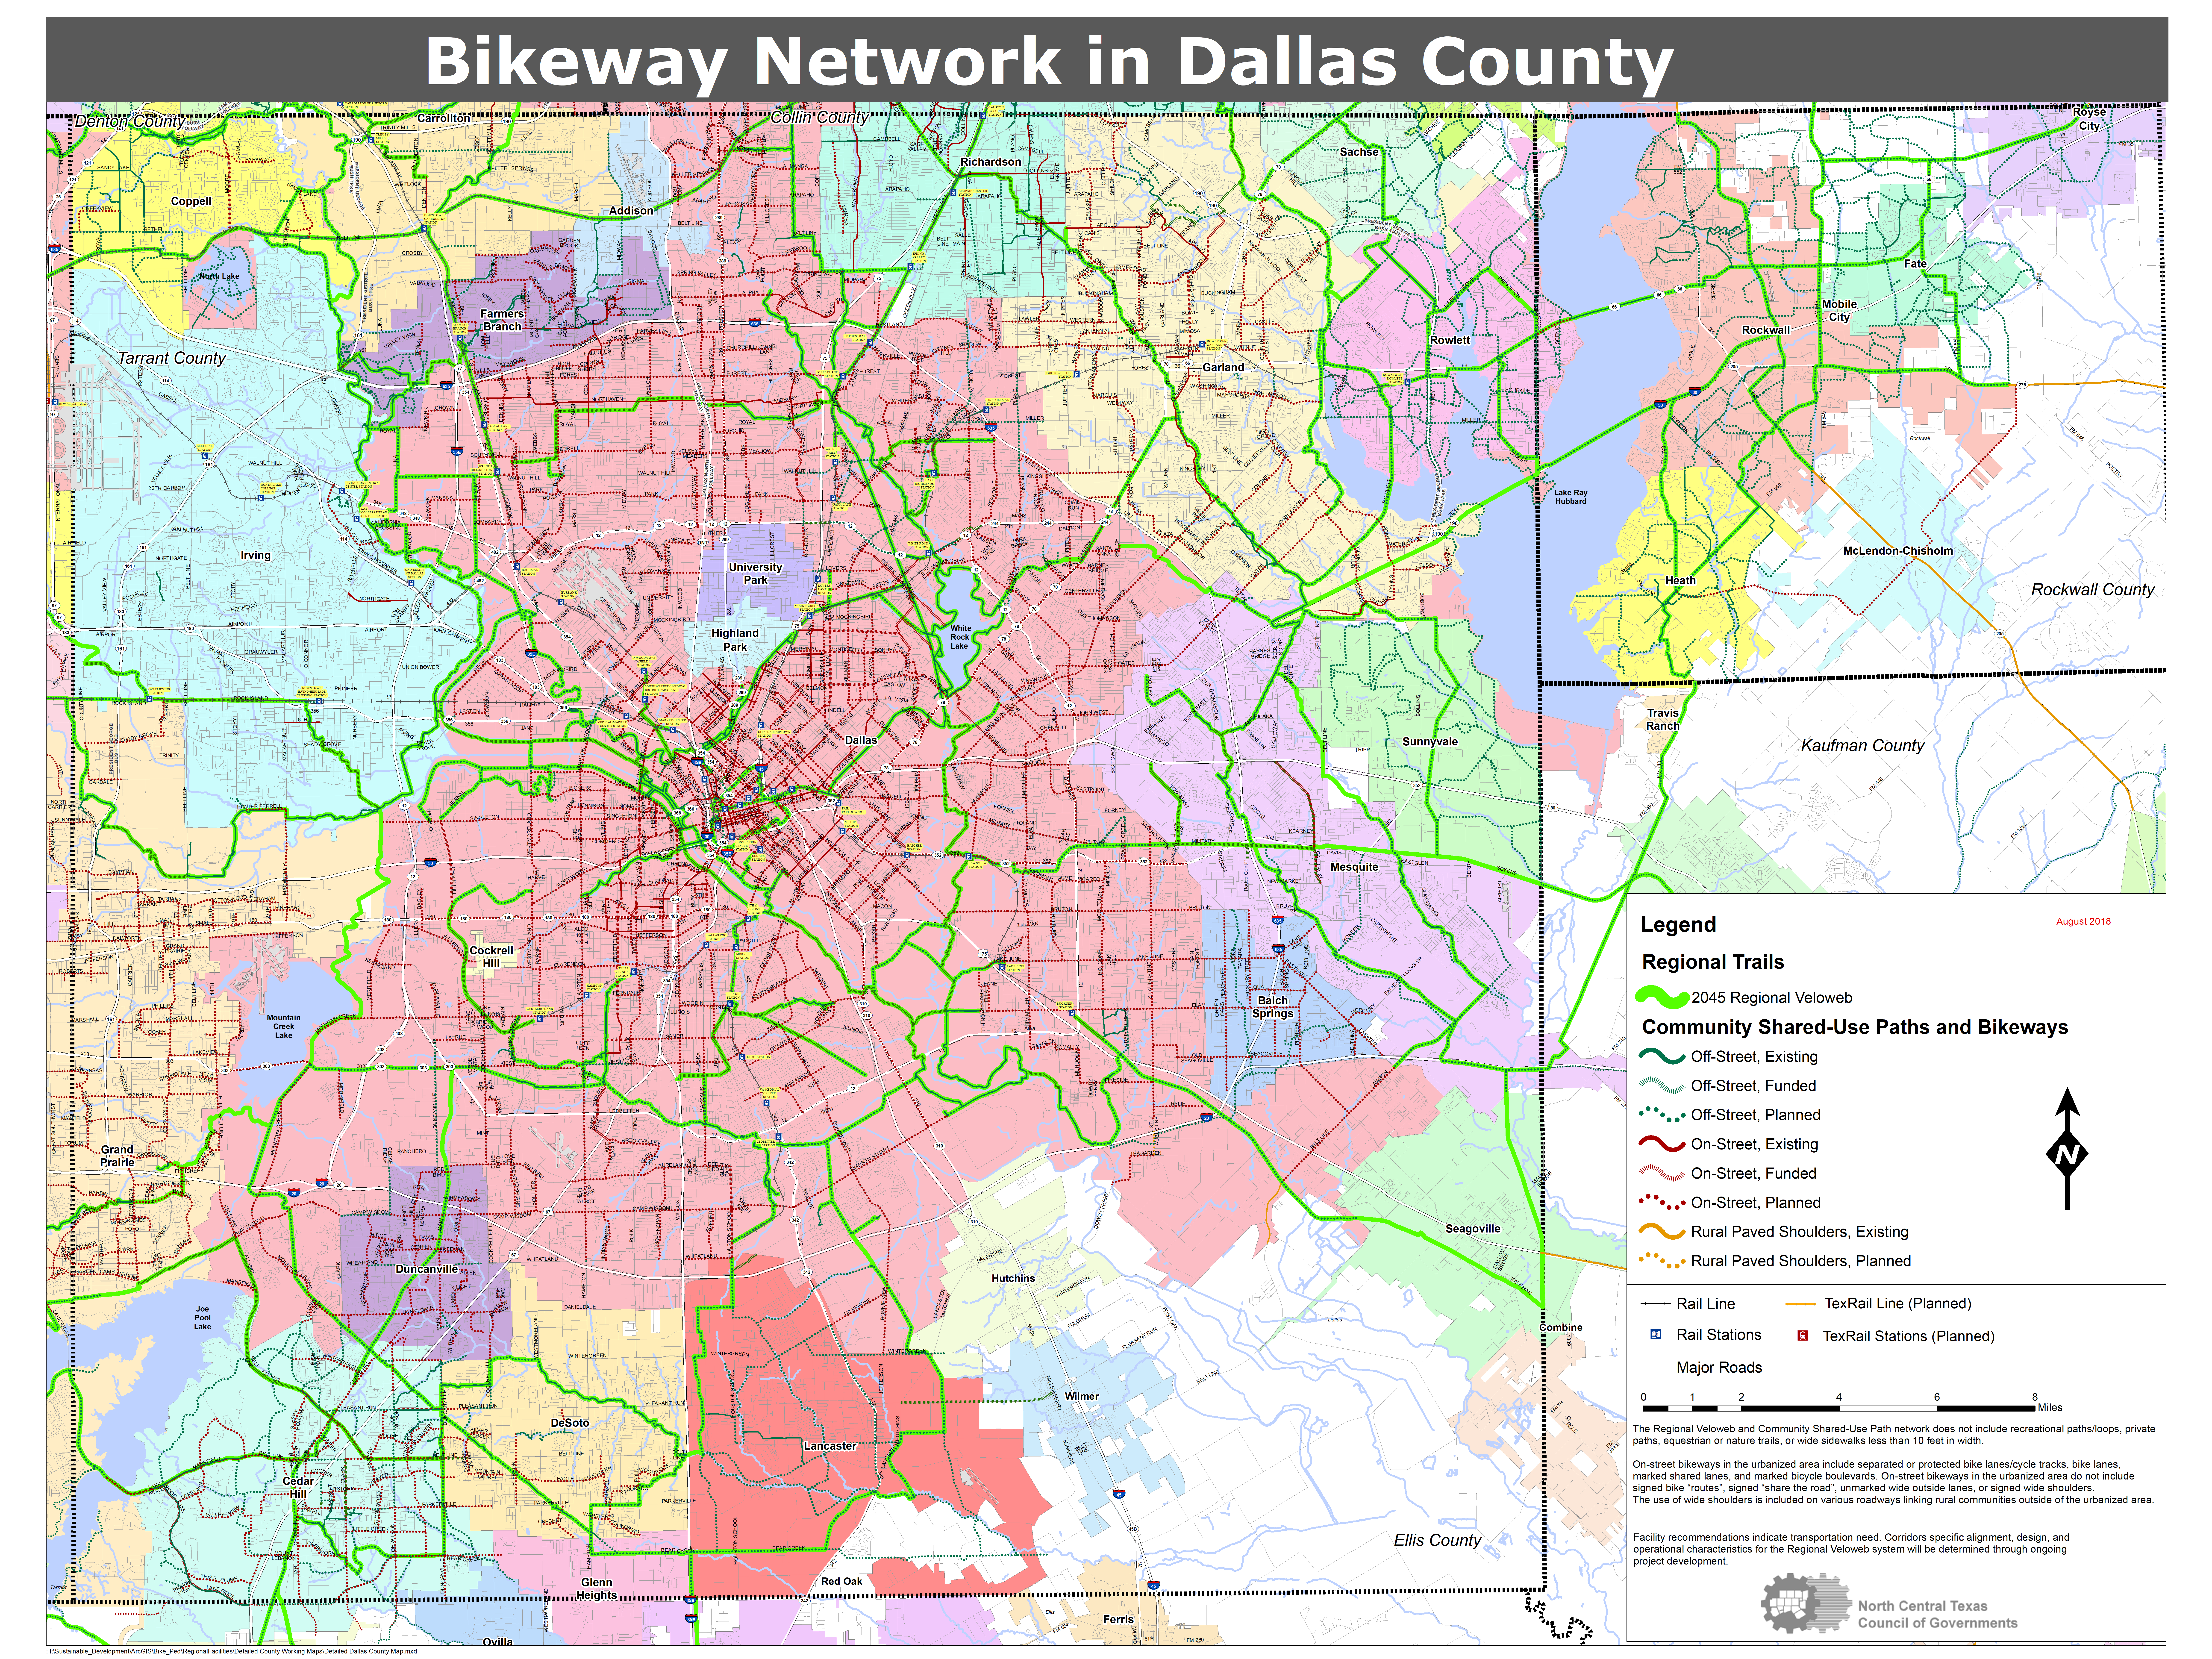 North Central Texas Council of Governments - Detailed County Maps on